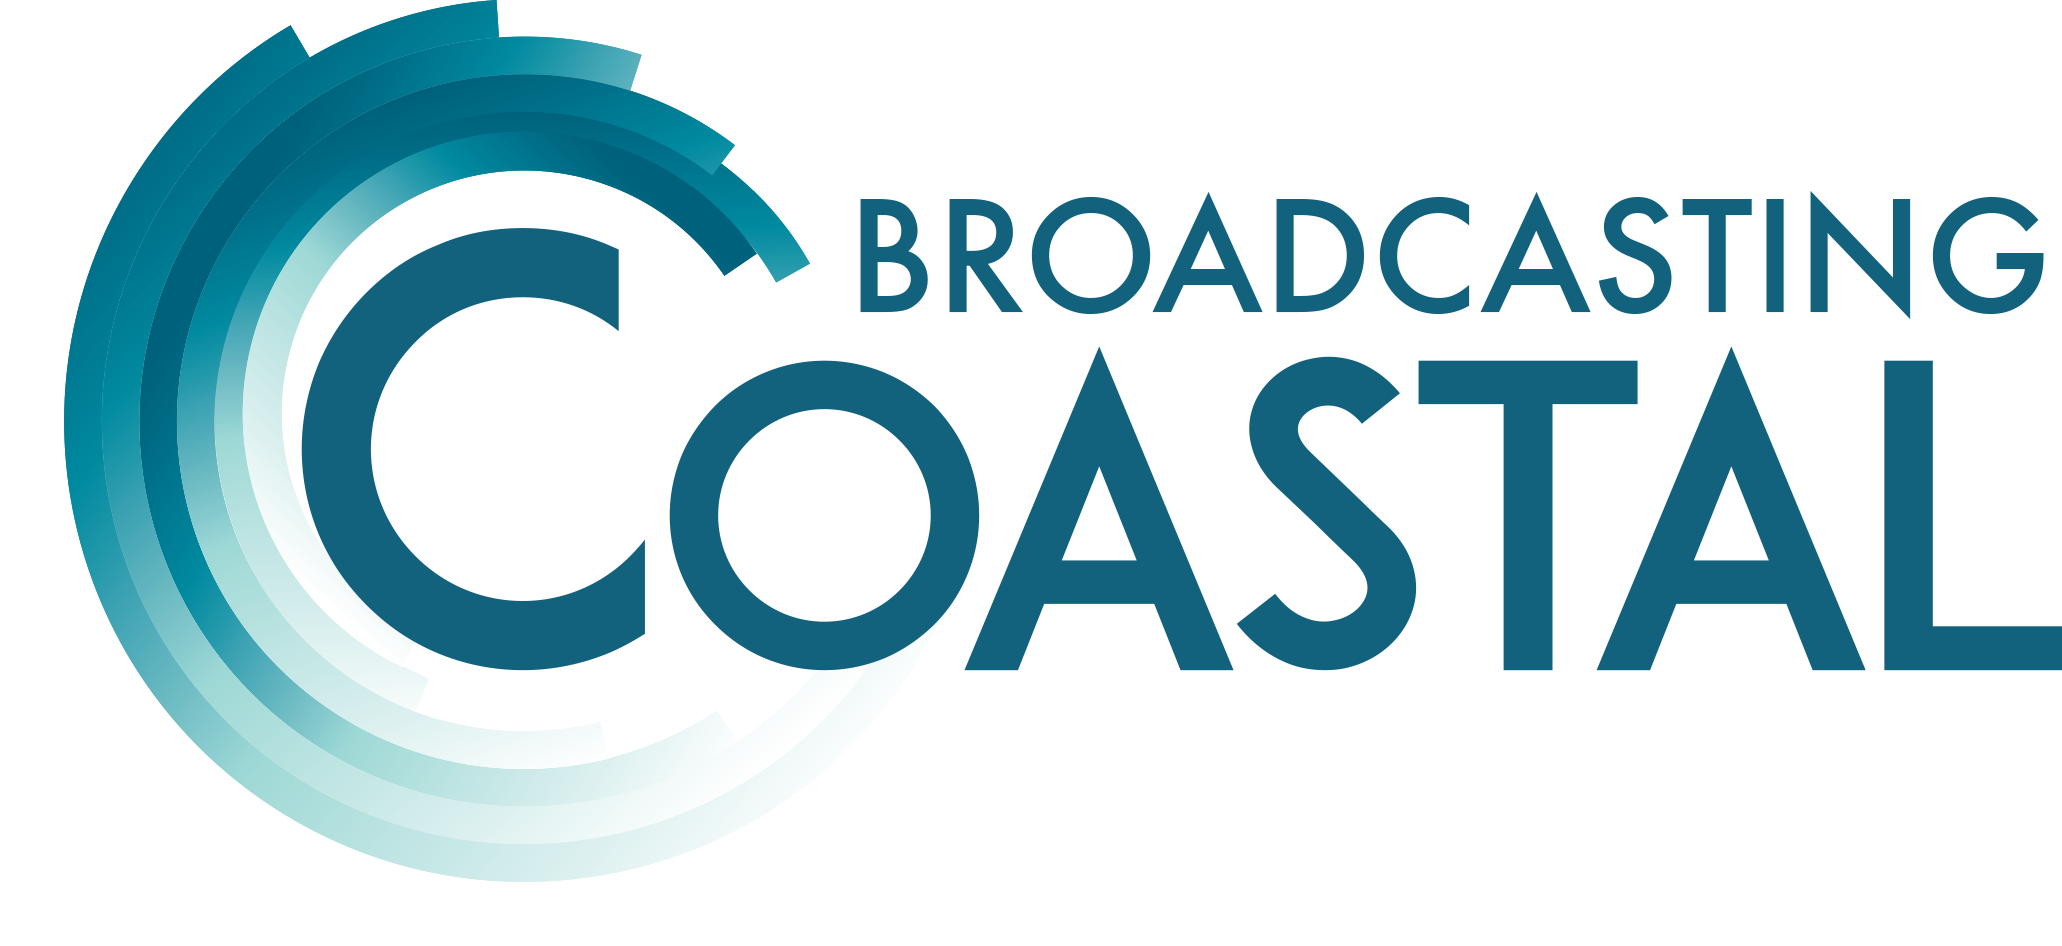 Coastal Broadcasting Systems, Inc